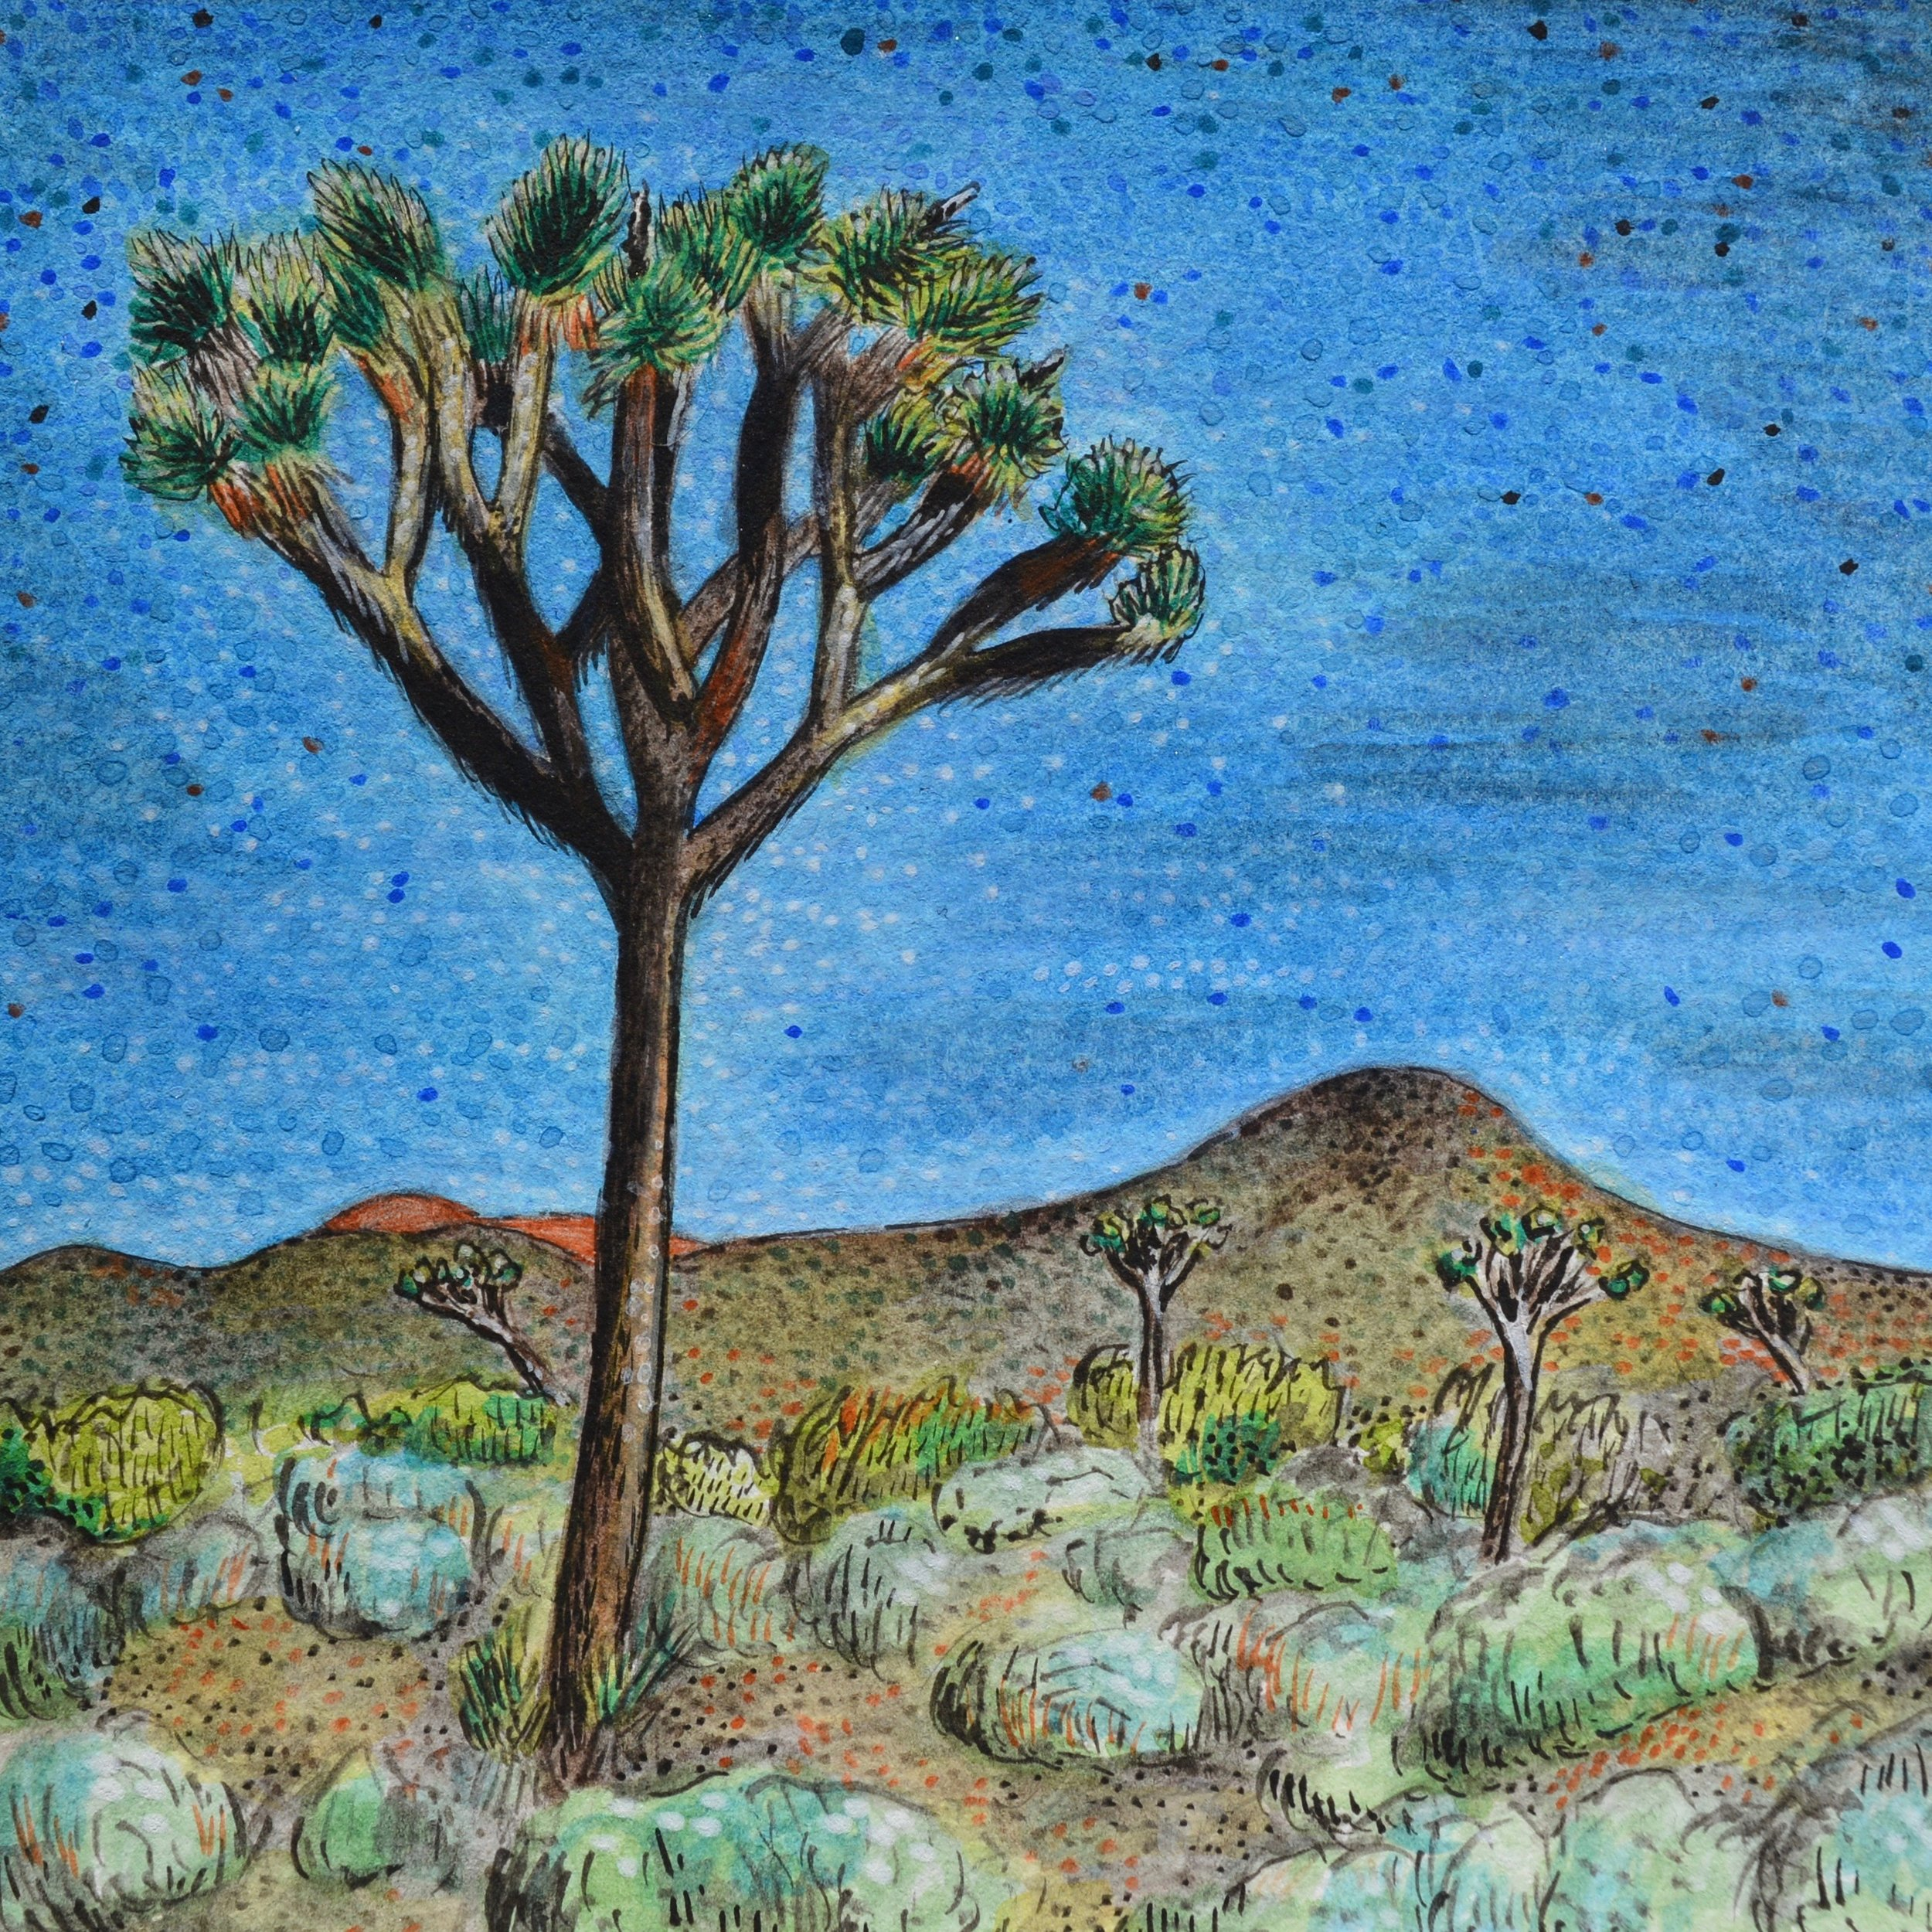 My Painting of a Joshua Tree Landscape